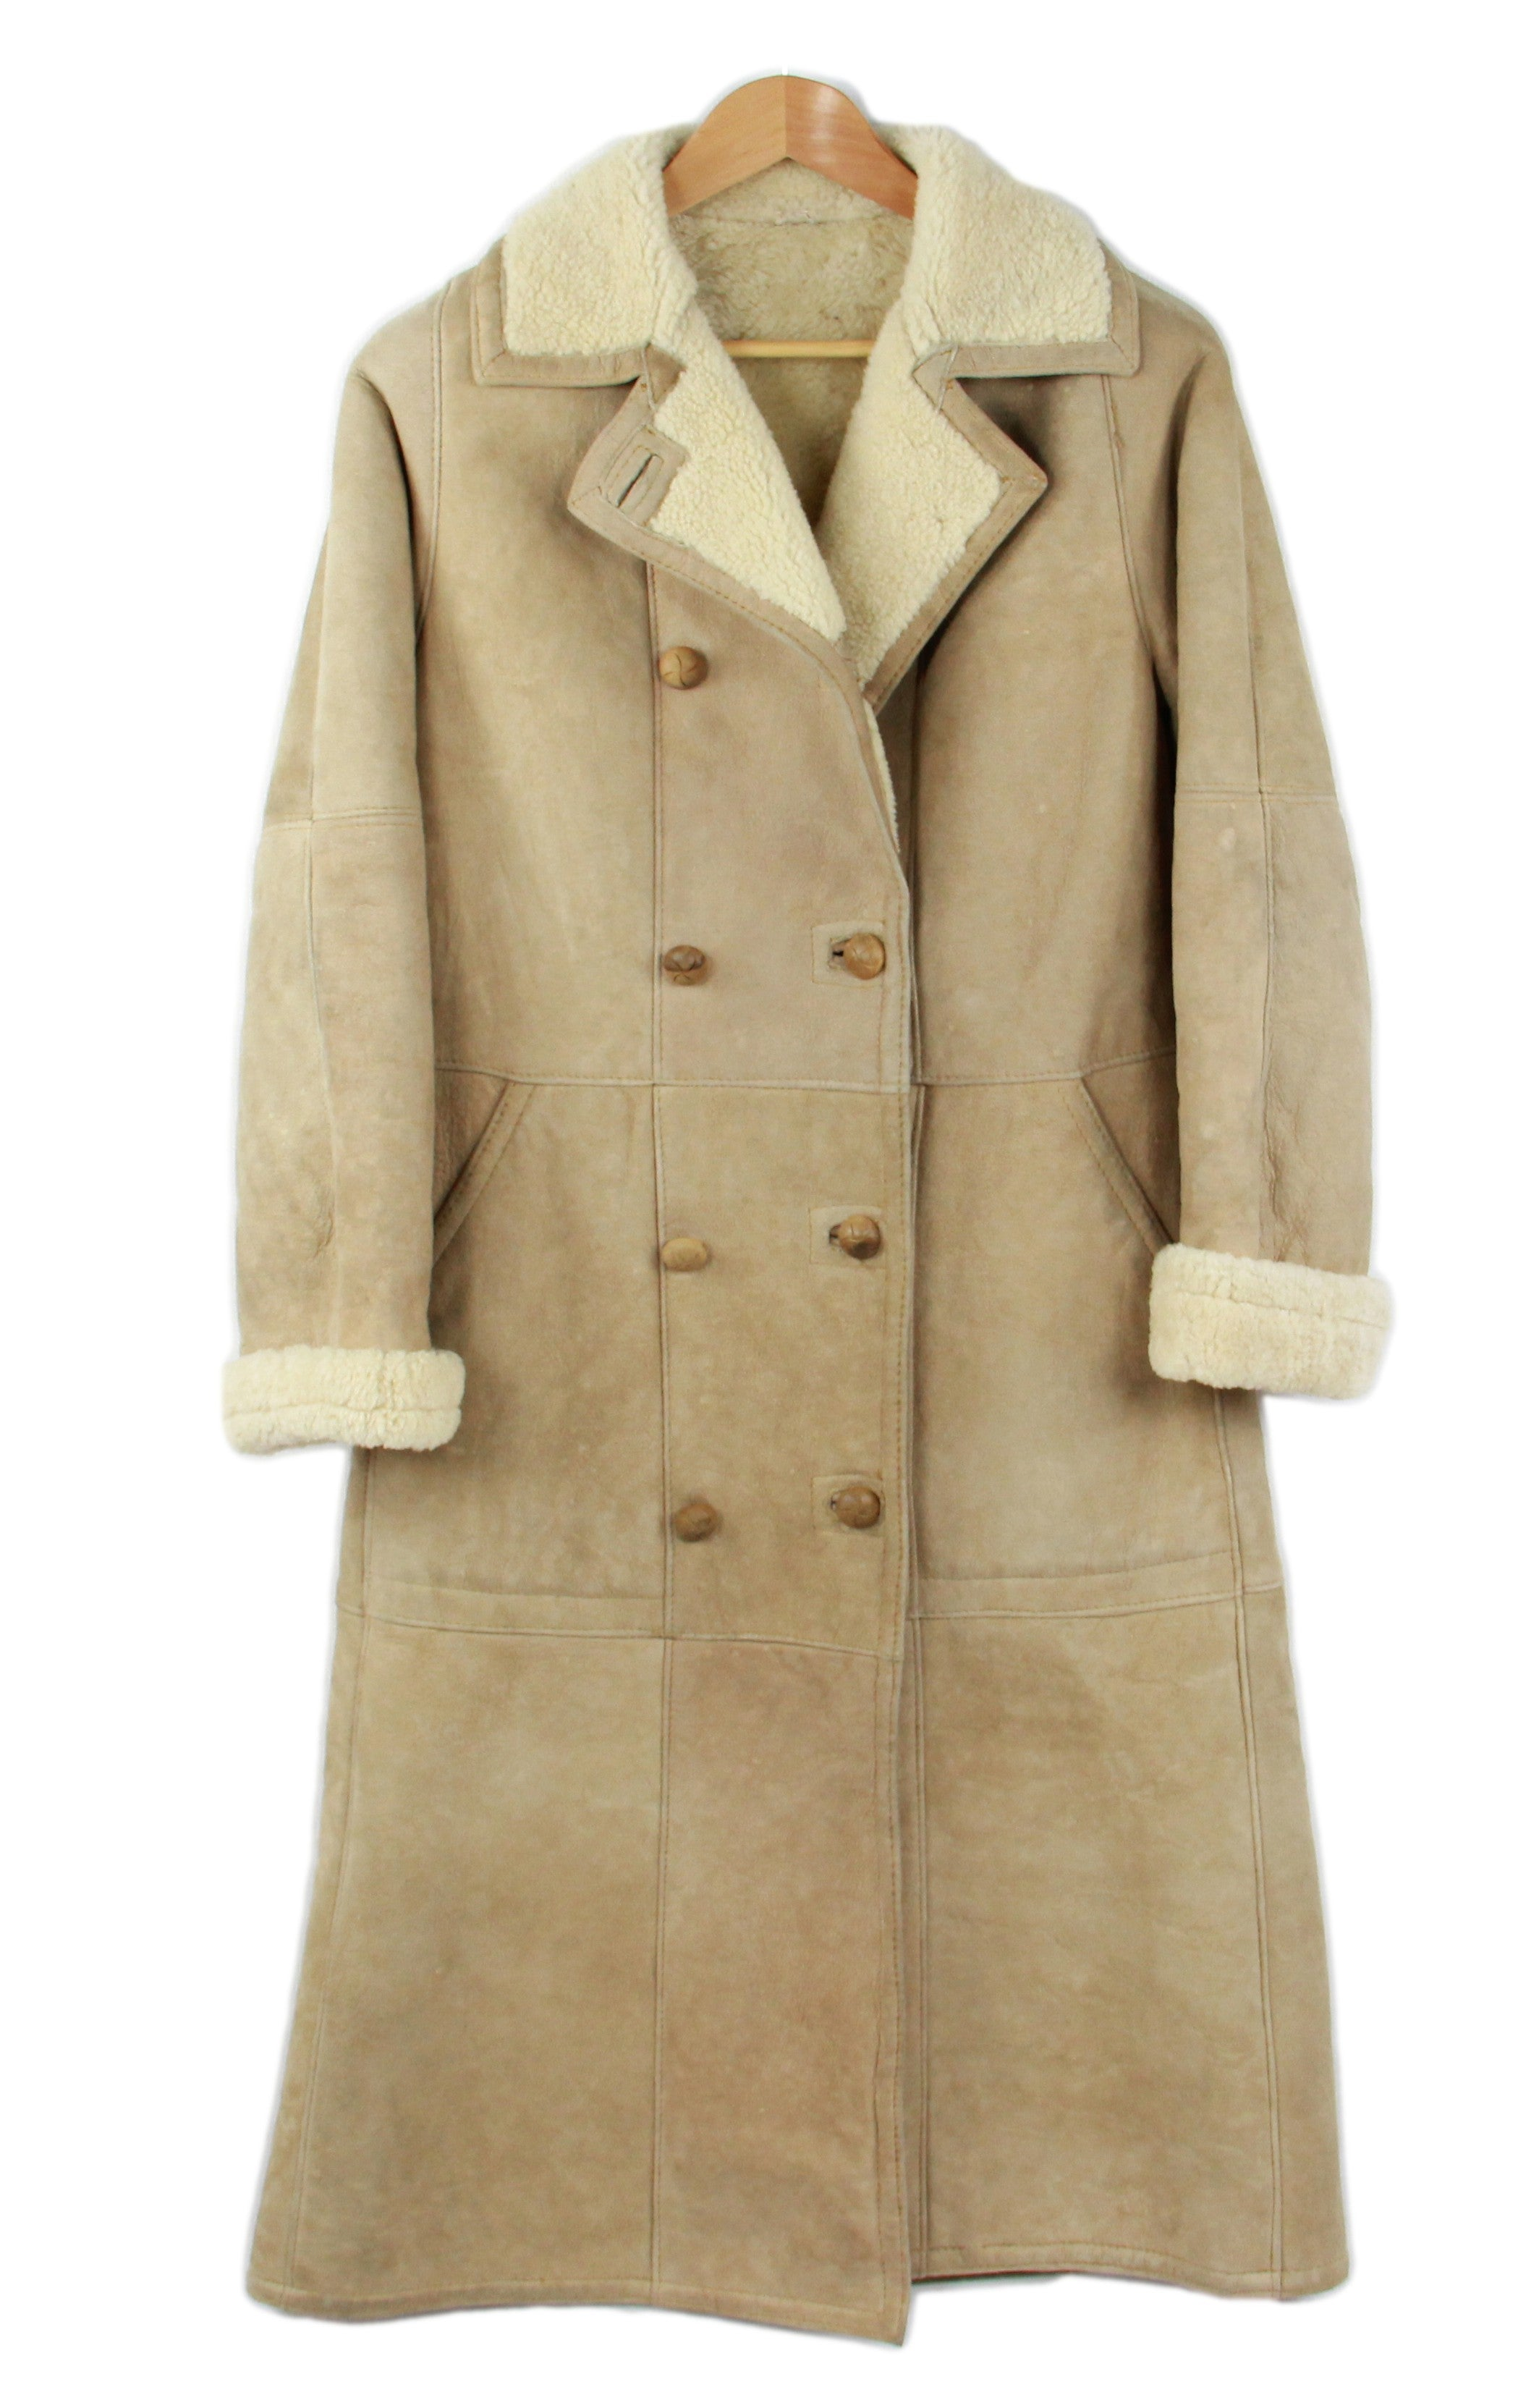 Women's Beige Long Shearling Lambskin Coat, SIZE M